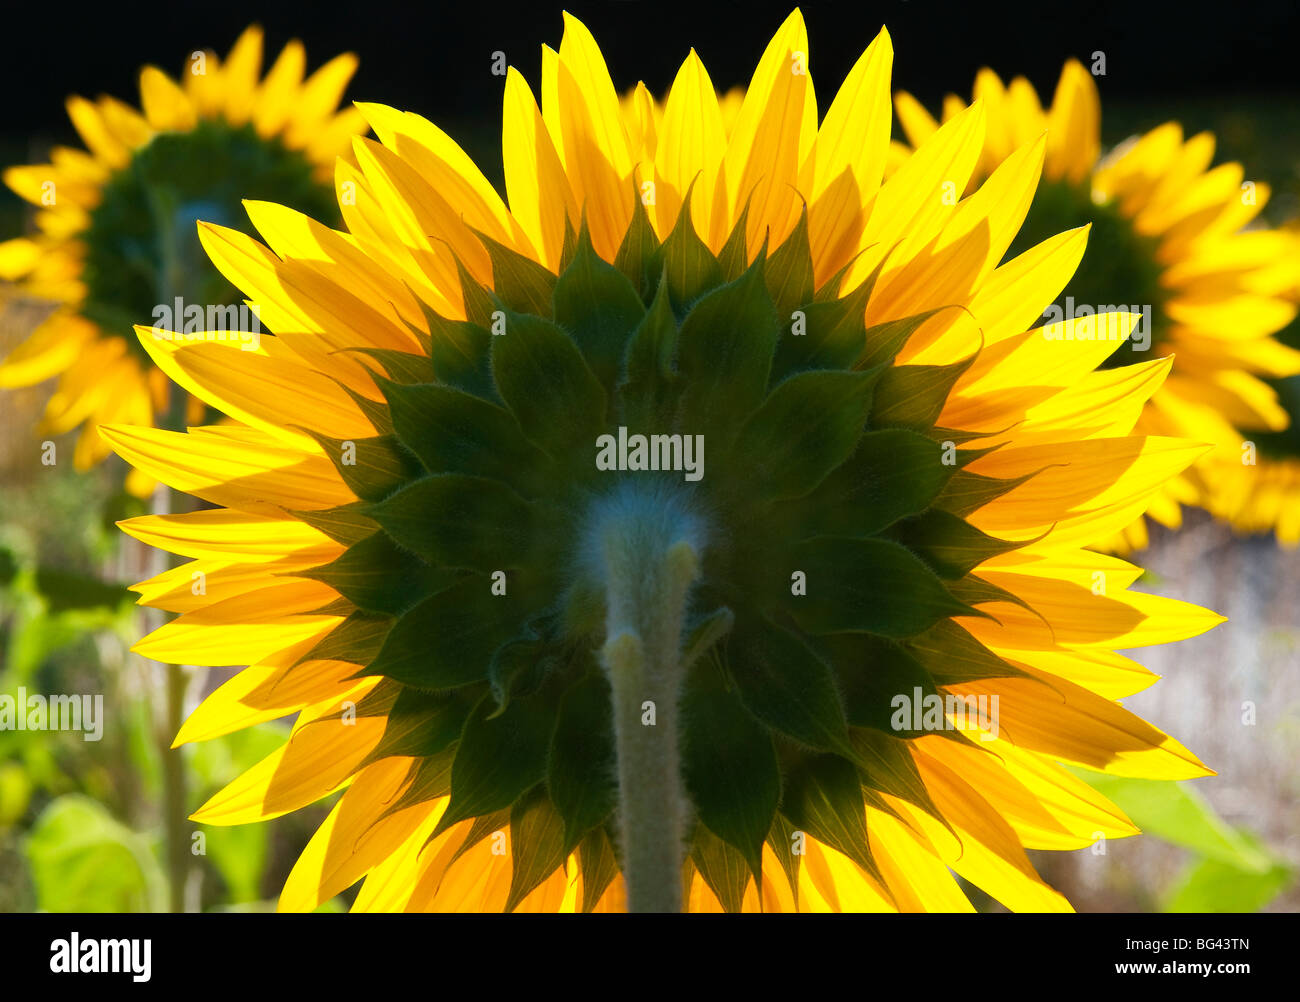 Sunflowers in the morning light, Provence, France - Stock Image